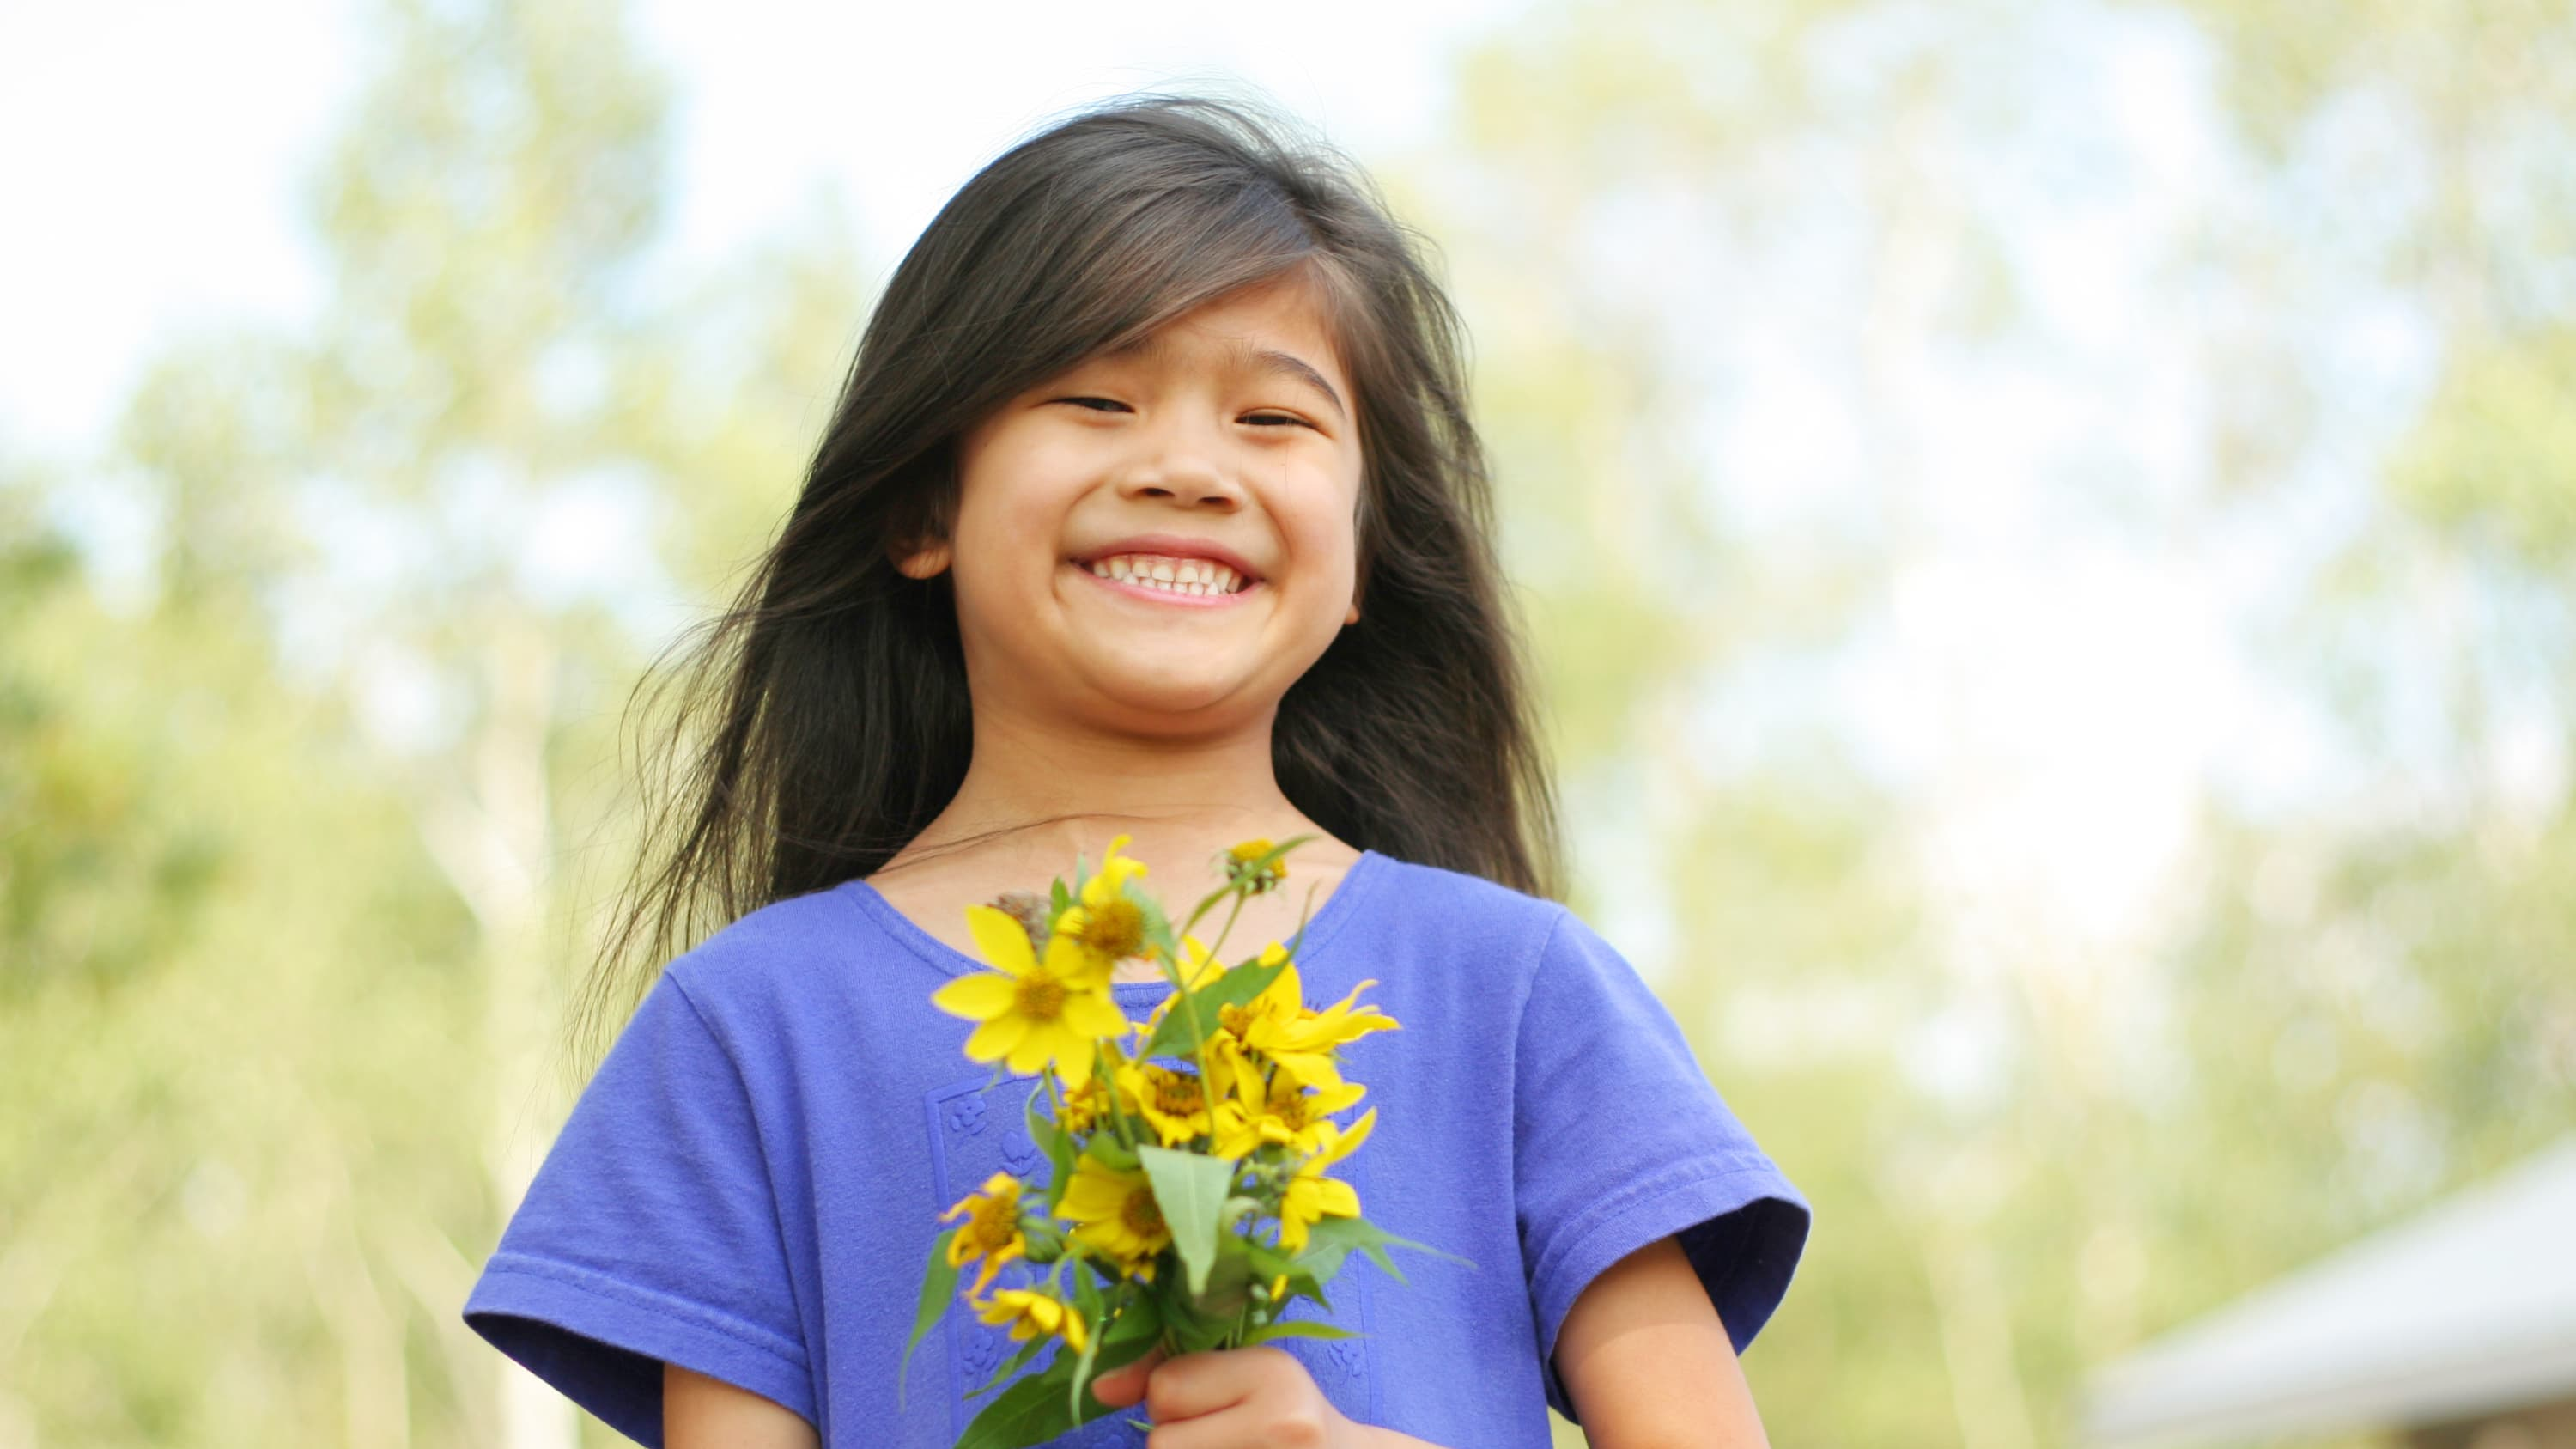 A young girl with epilepsy smiles for the camera while holding flowers.